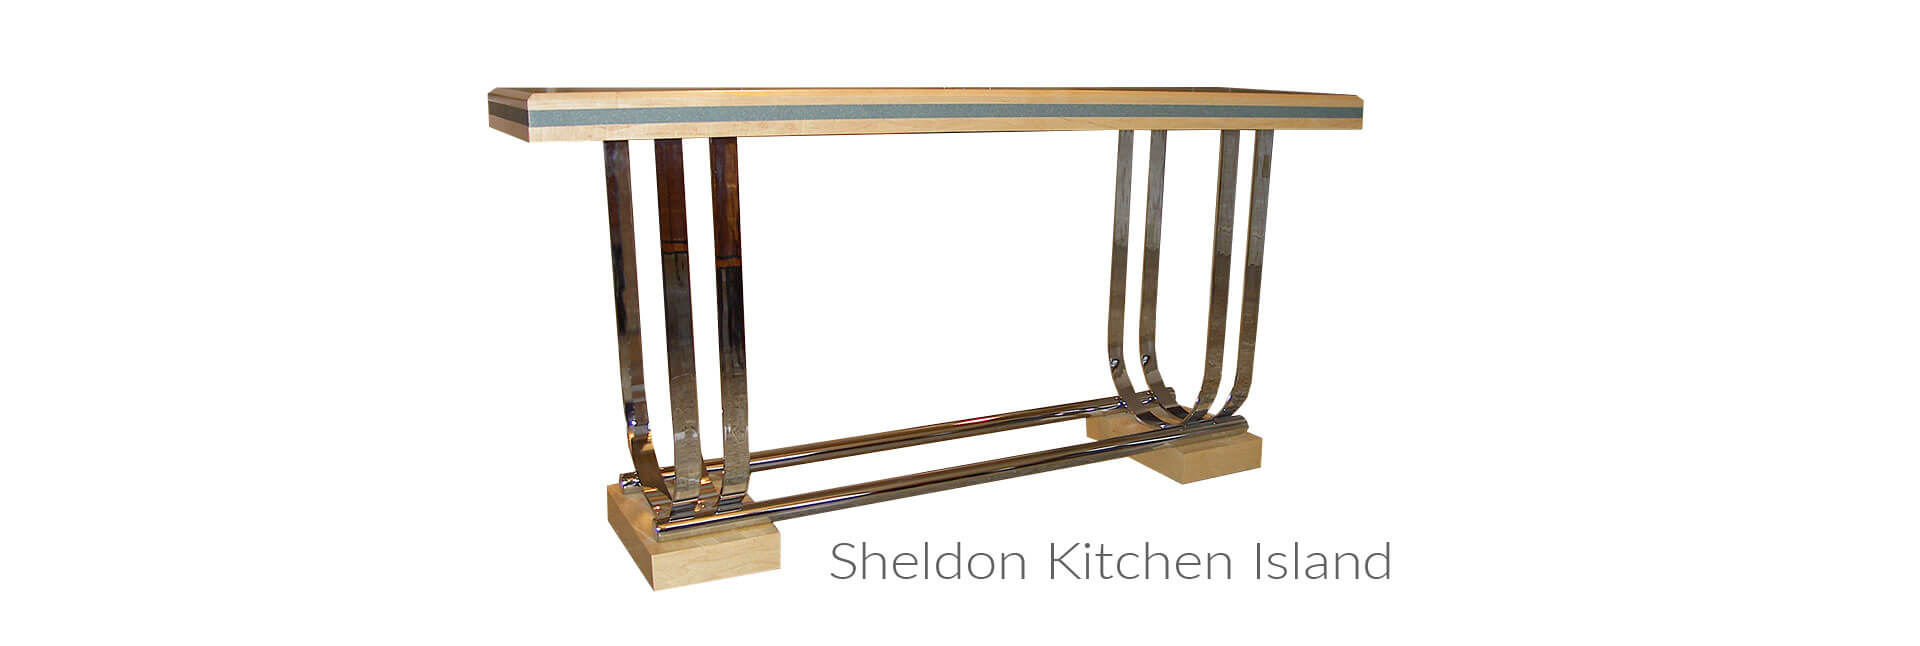 NCF-Featured-Sheldon-Kitchen-Island